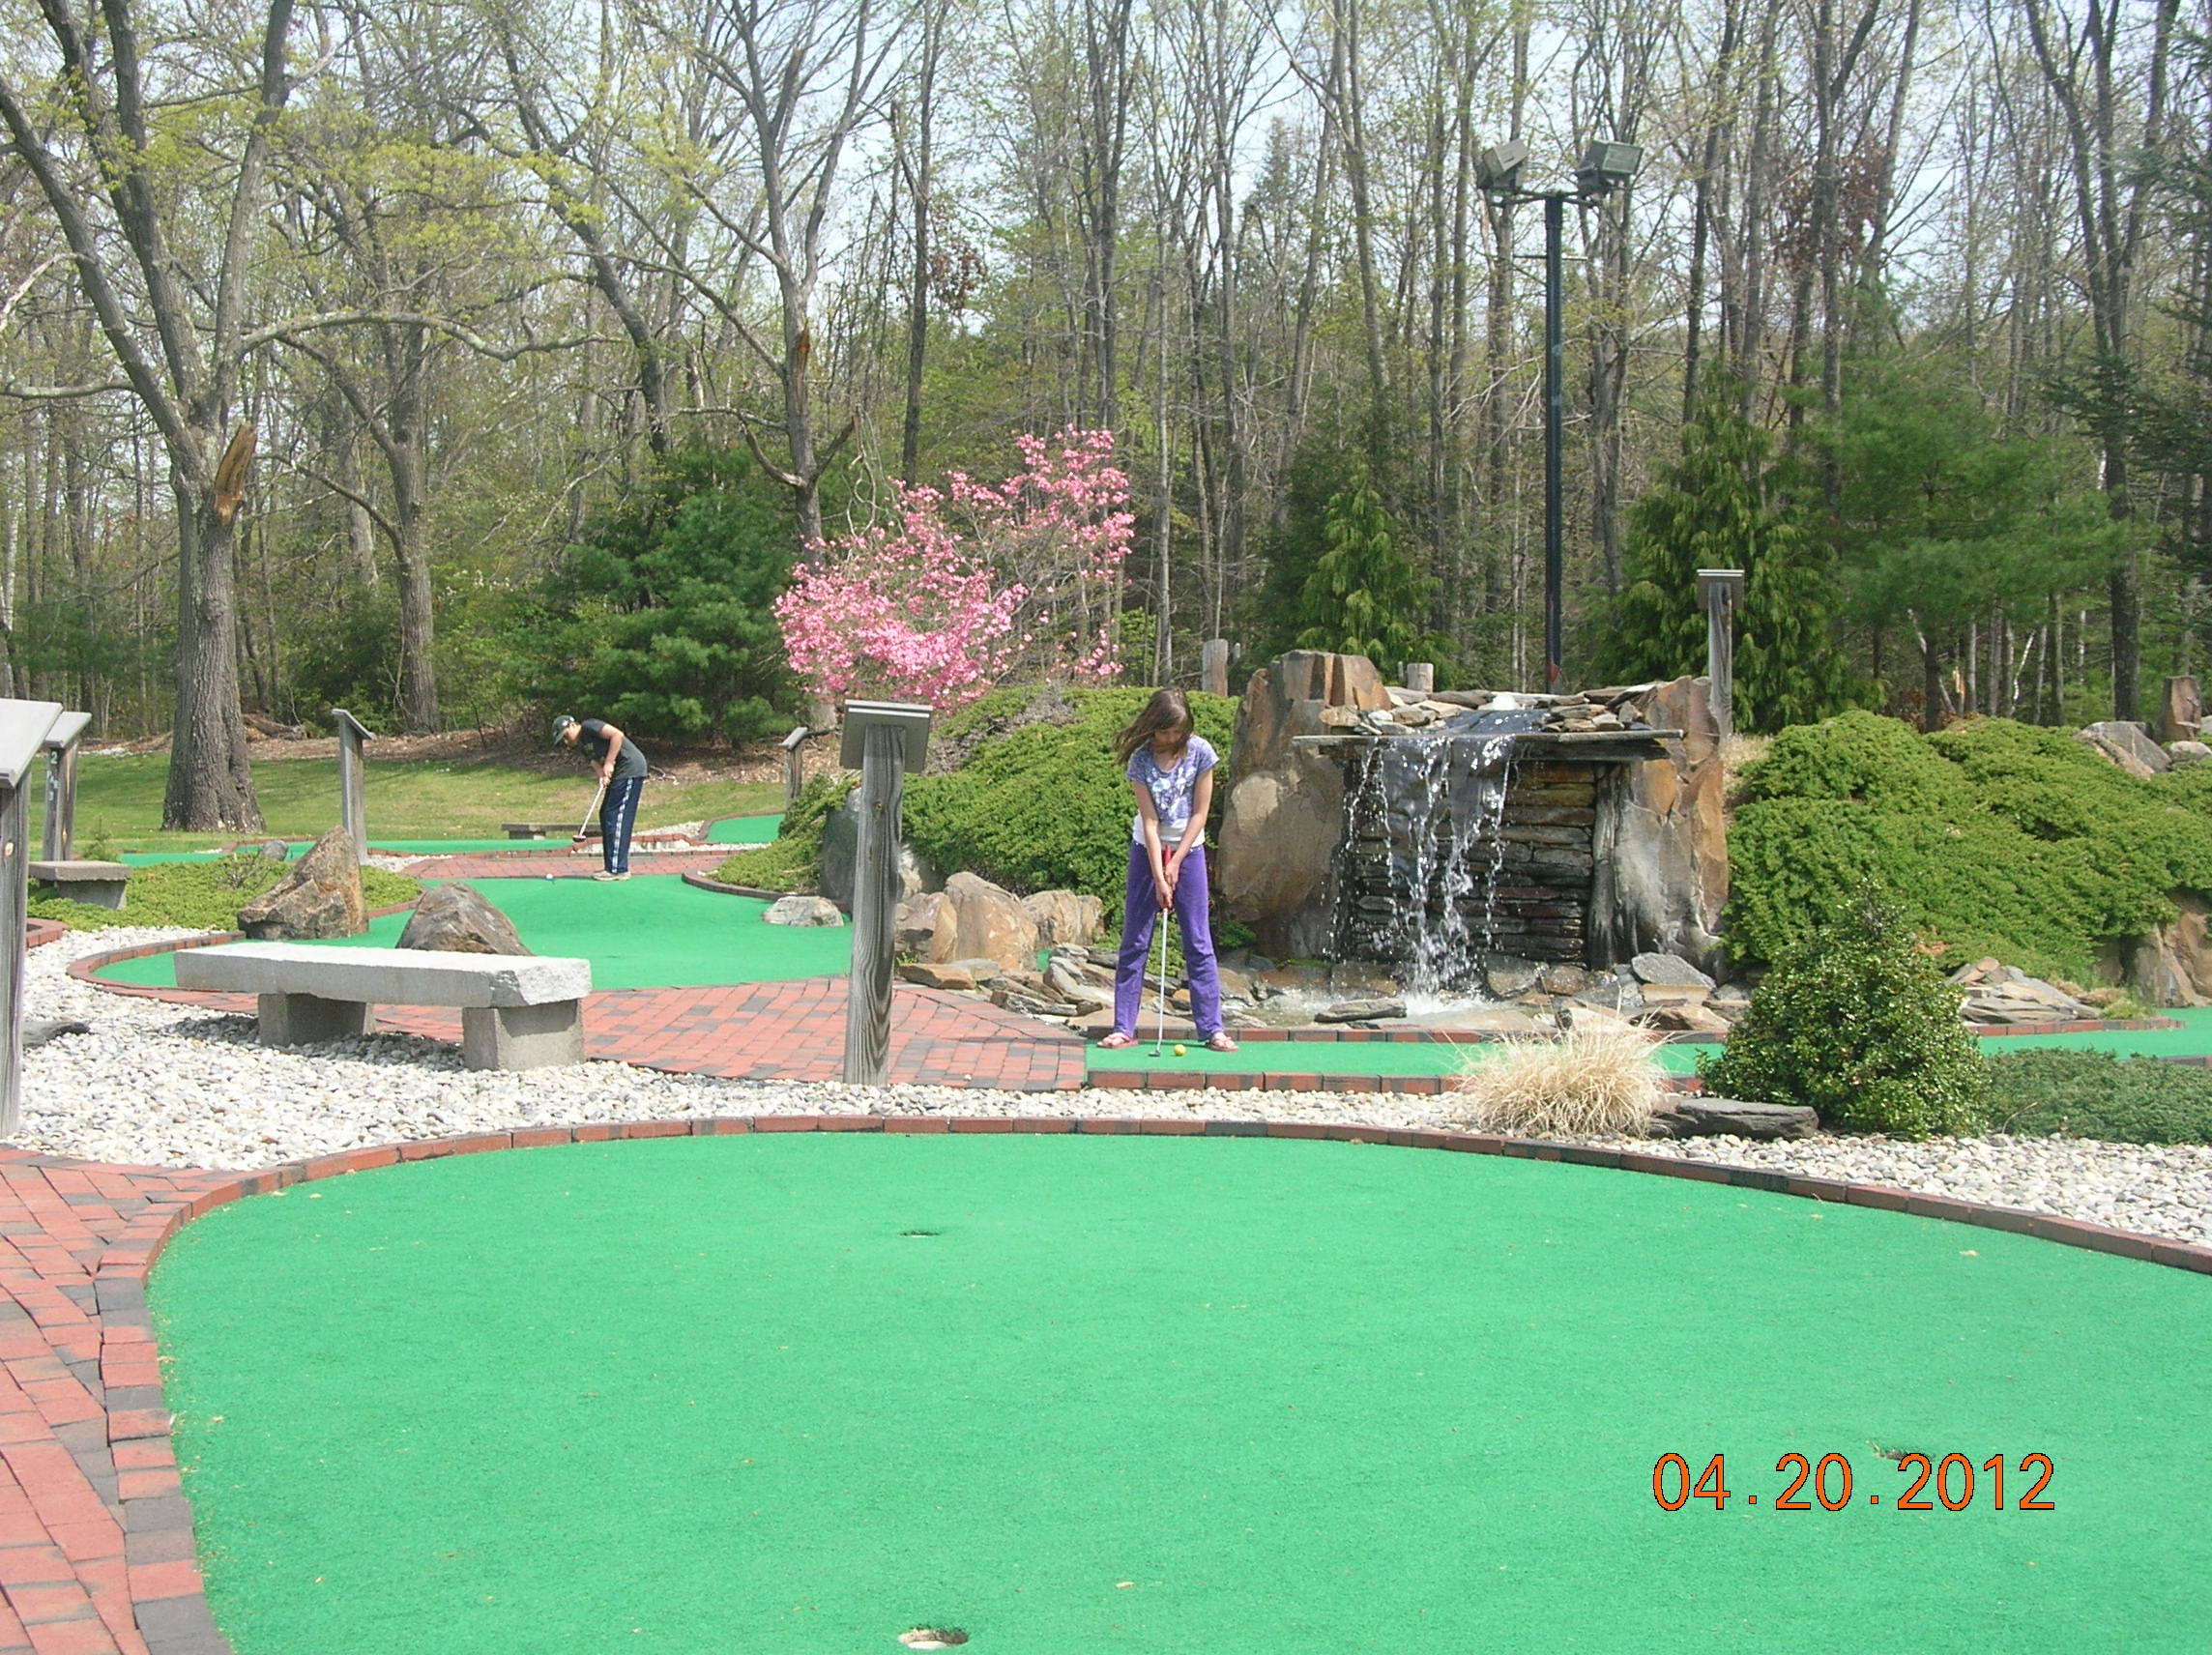 18 hole challenging mini golf course.